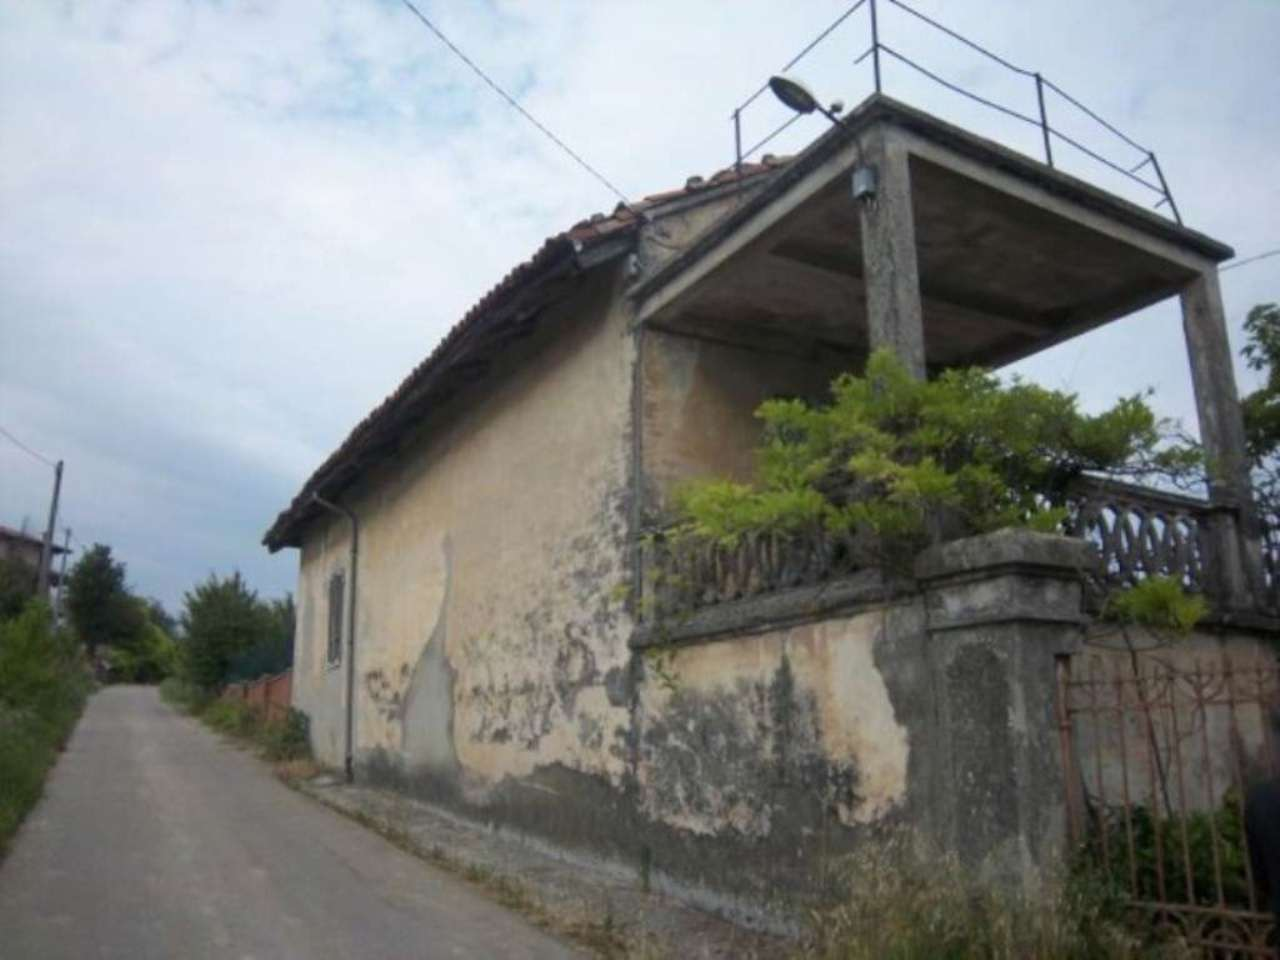 Annunci immobiliari neive for 3 piani di casa del ranch del garage dell automobile